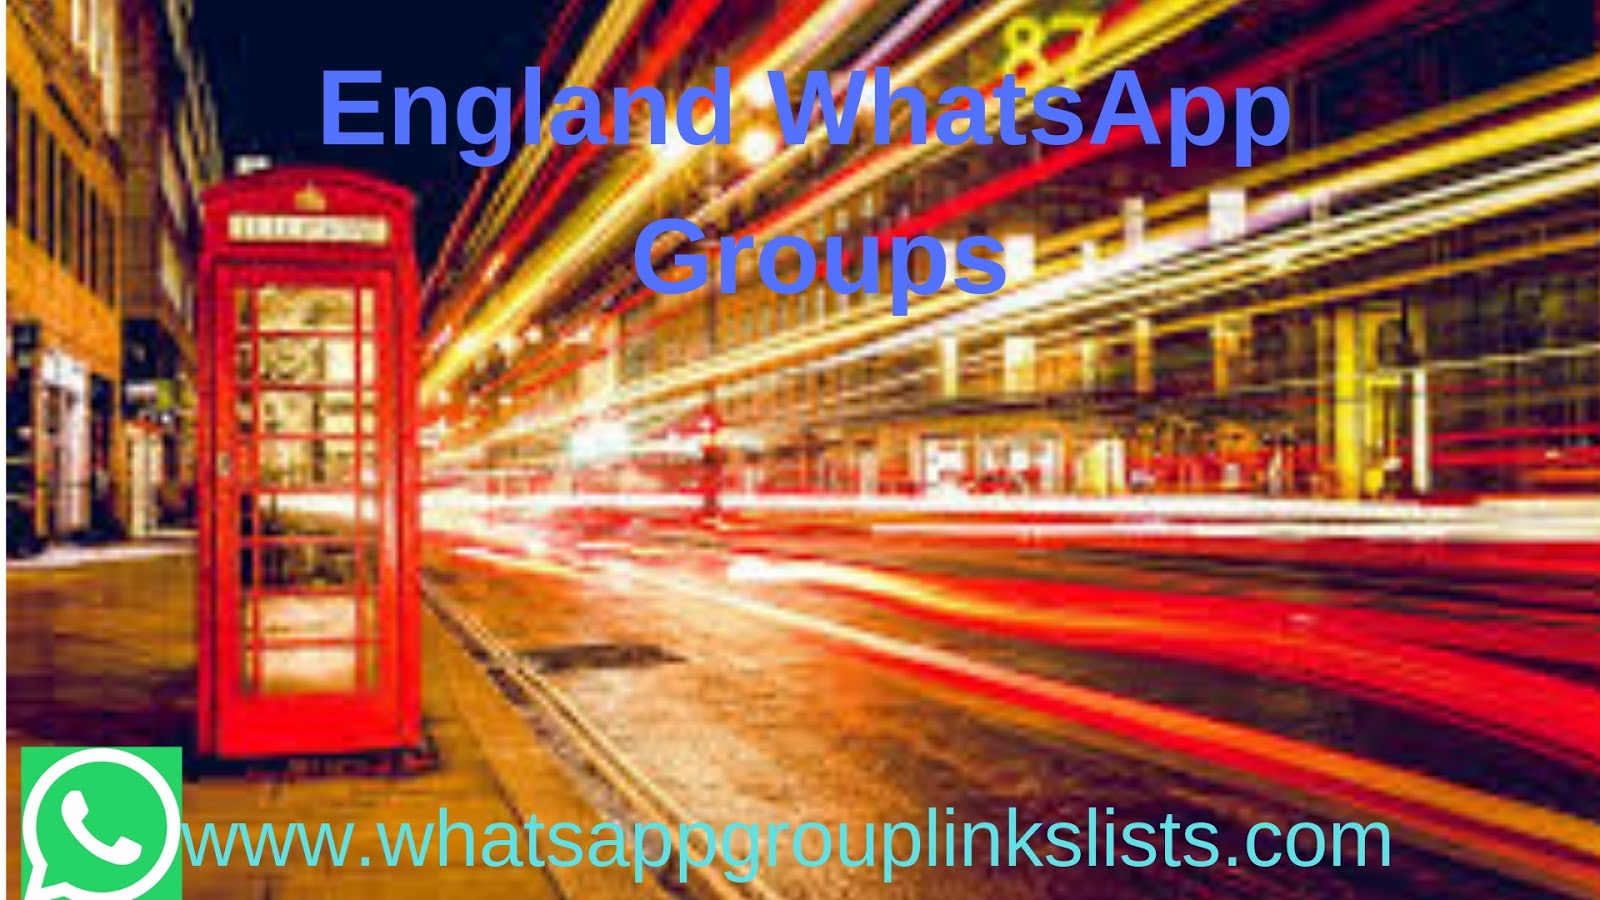 Join England WhatsApp Group Links list